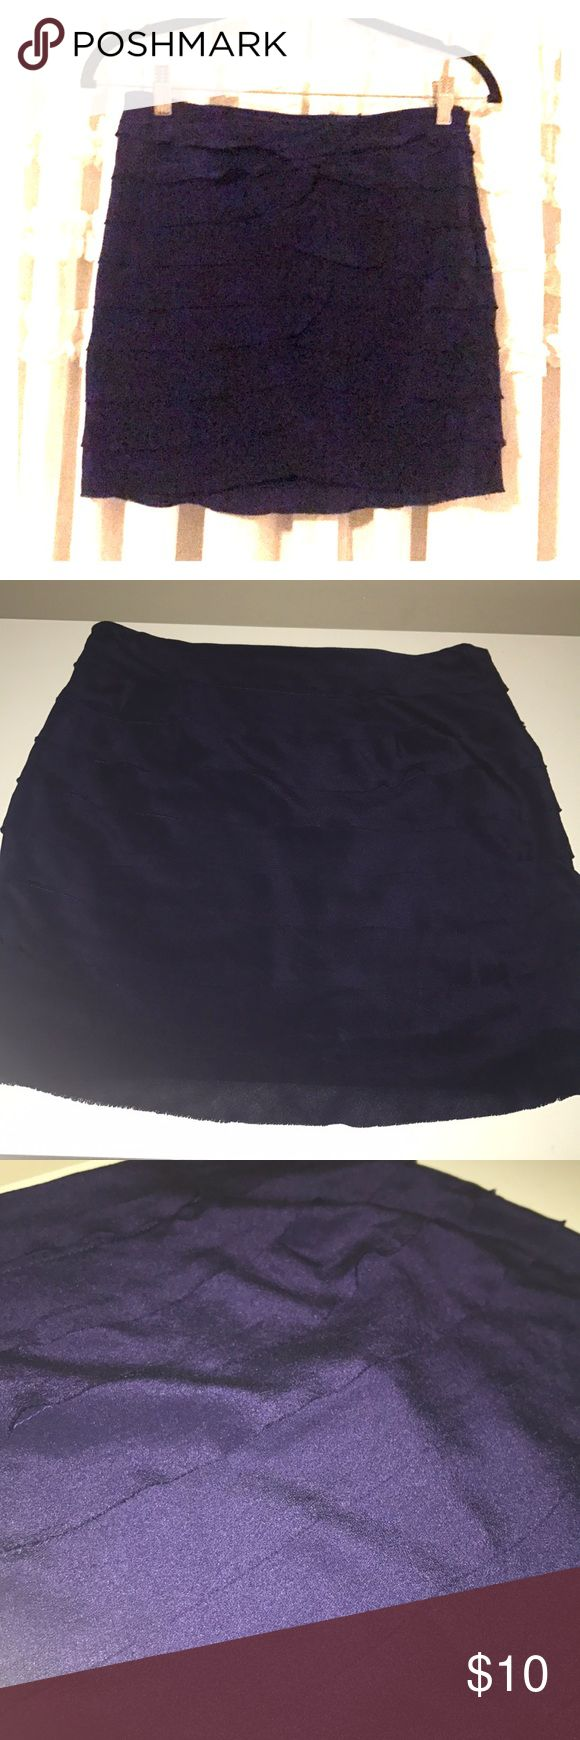 Beautiful Violet Mini Skirt The skirt is a beautiful violet color. It is tiered silk and is very delicate and dainty. It is perfect to wear with a tucked in shirt and wall boots for a stylish winter look! The skirt is dry clean only and is fully lined. The lining is 100% polyester. Forever 21 Skirts Mini